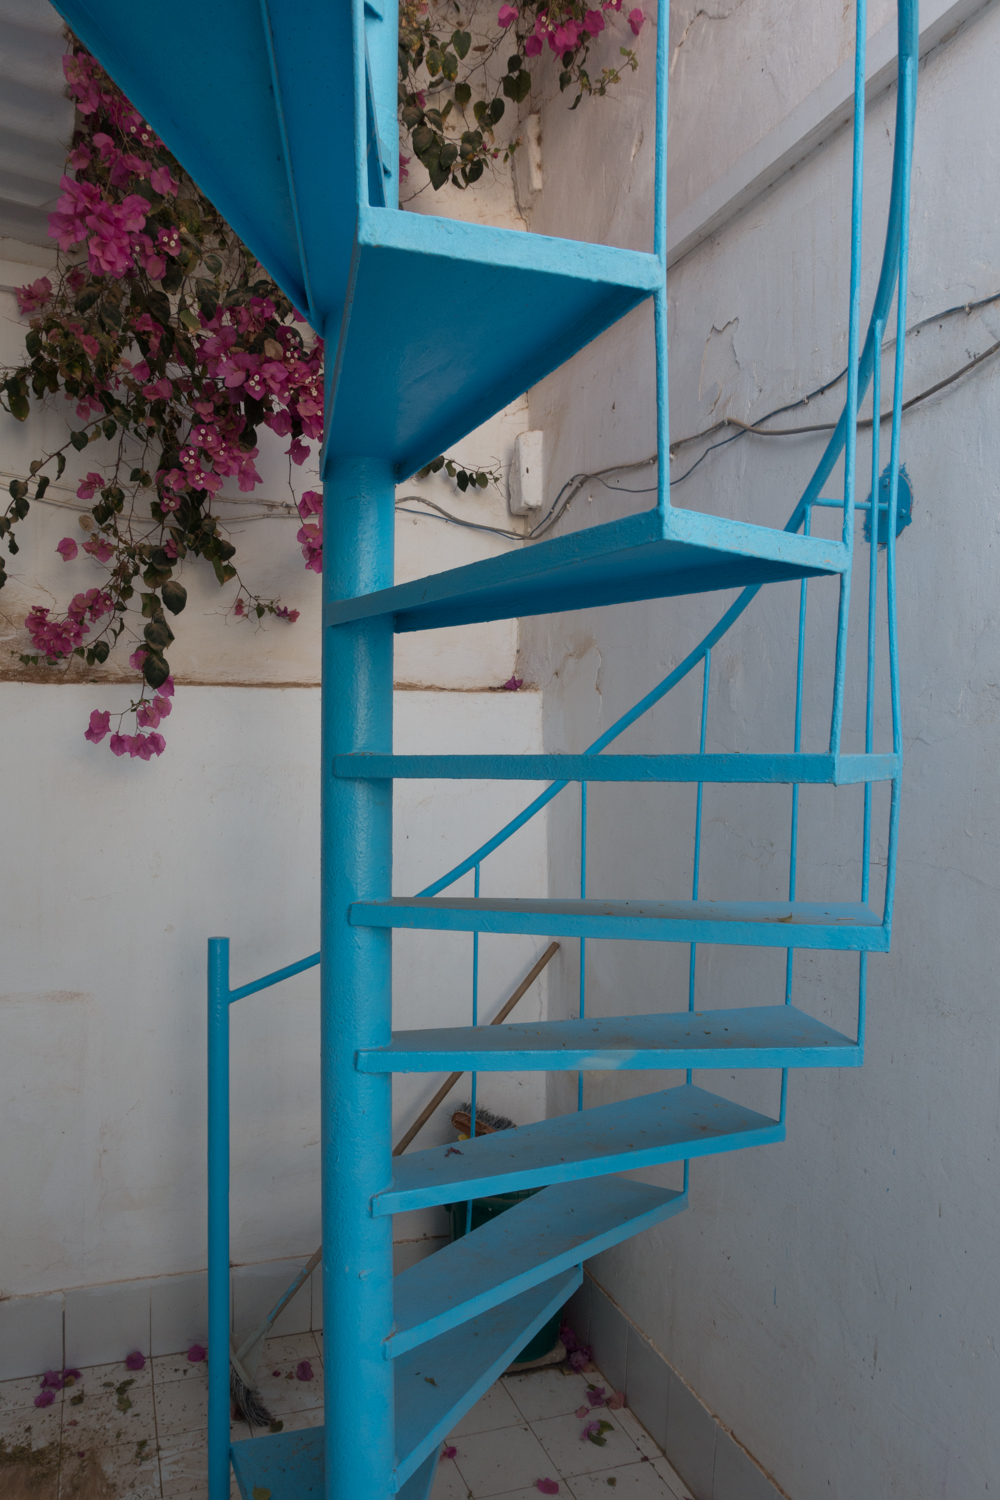 Stairs going up to the terrace (and the beautiful Bougainvillea peaking from above)